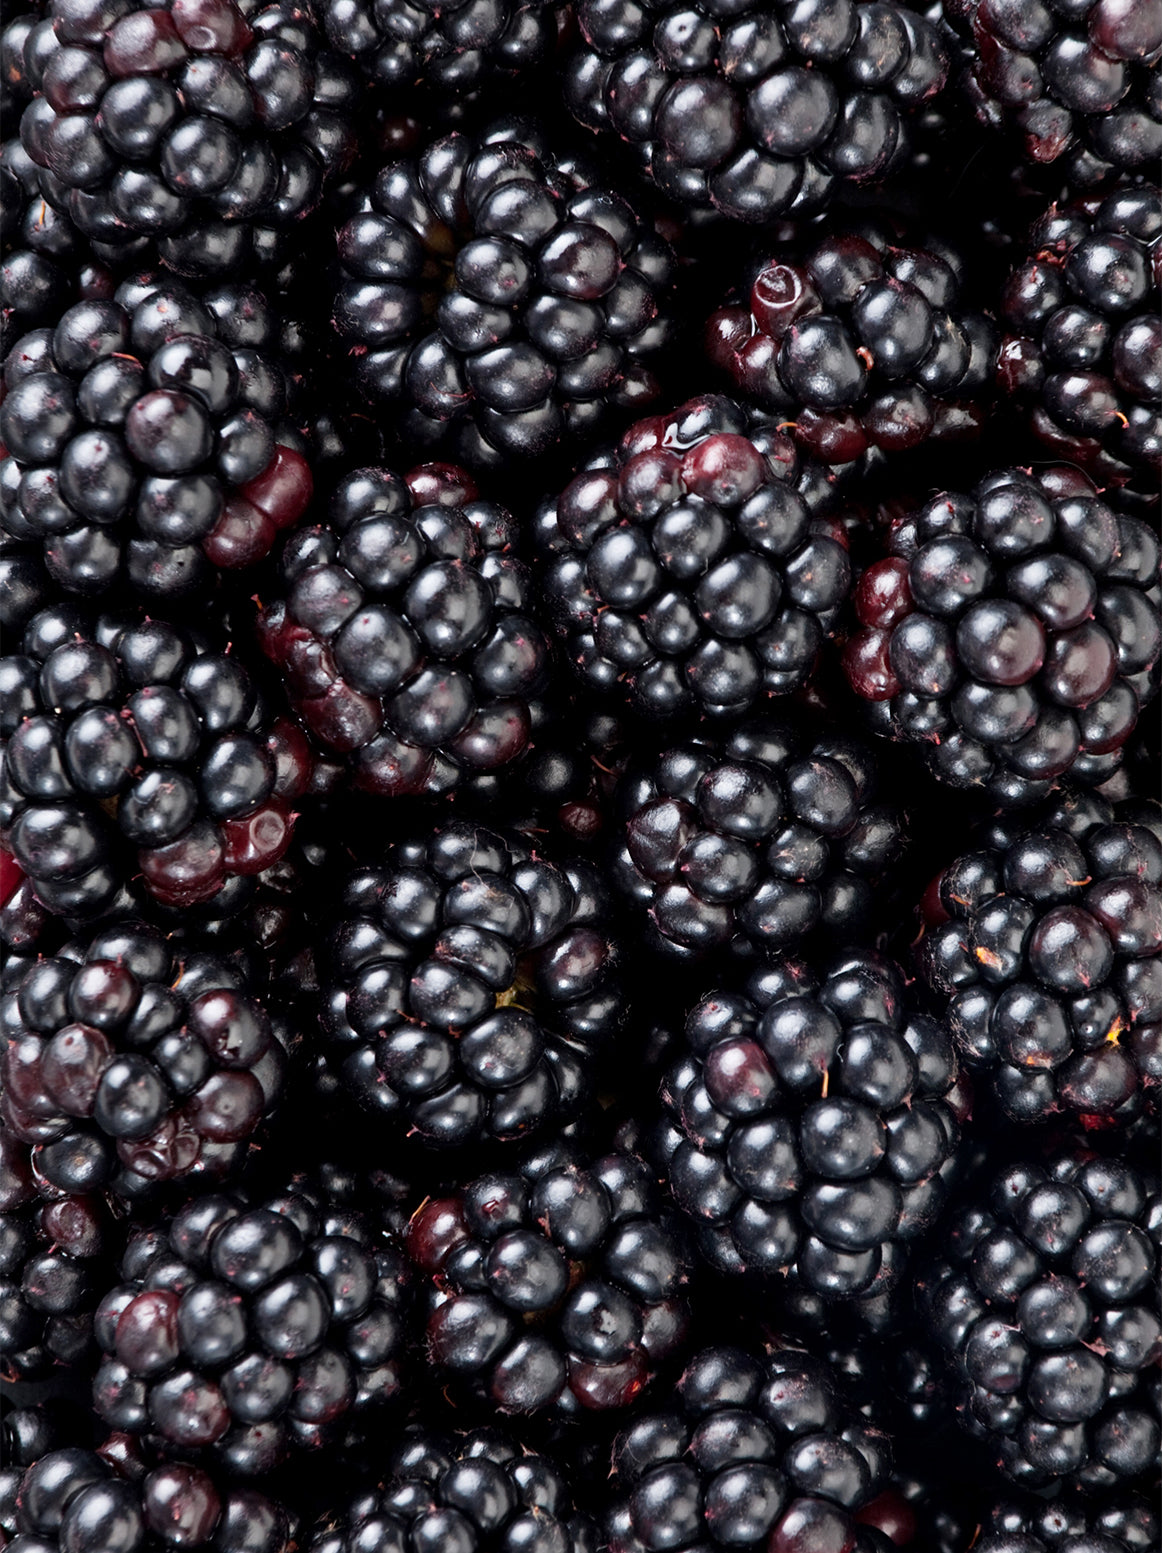 Blackberries - 1/2 pint